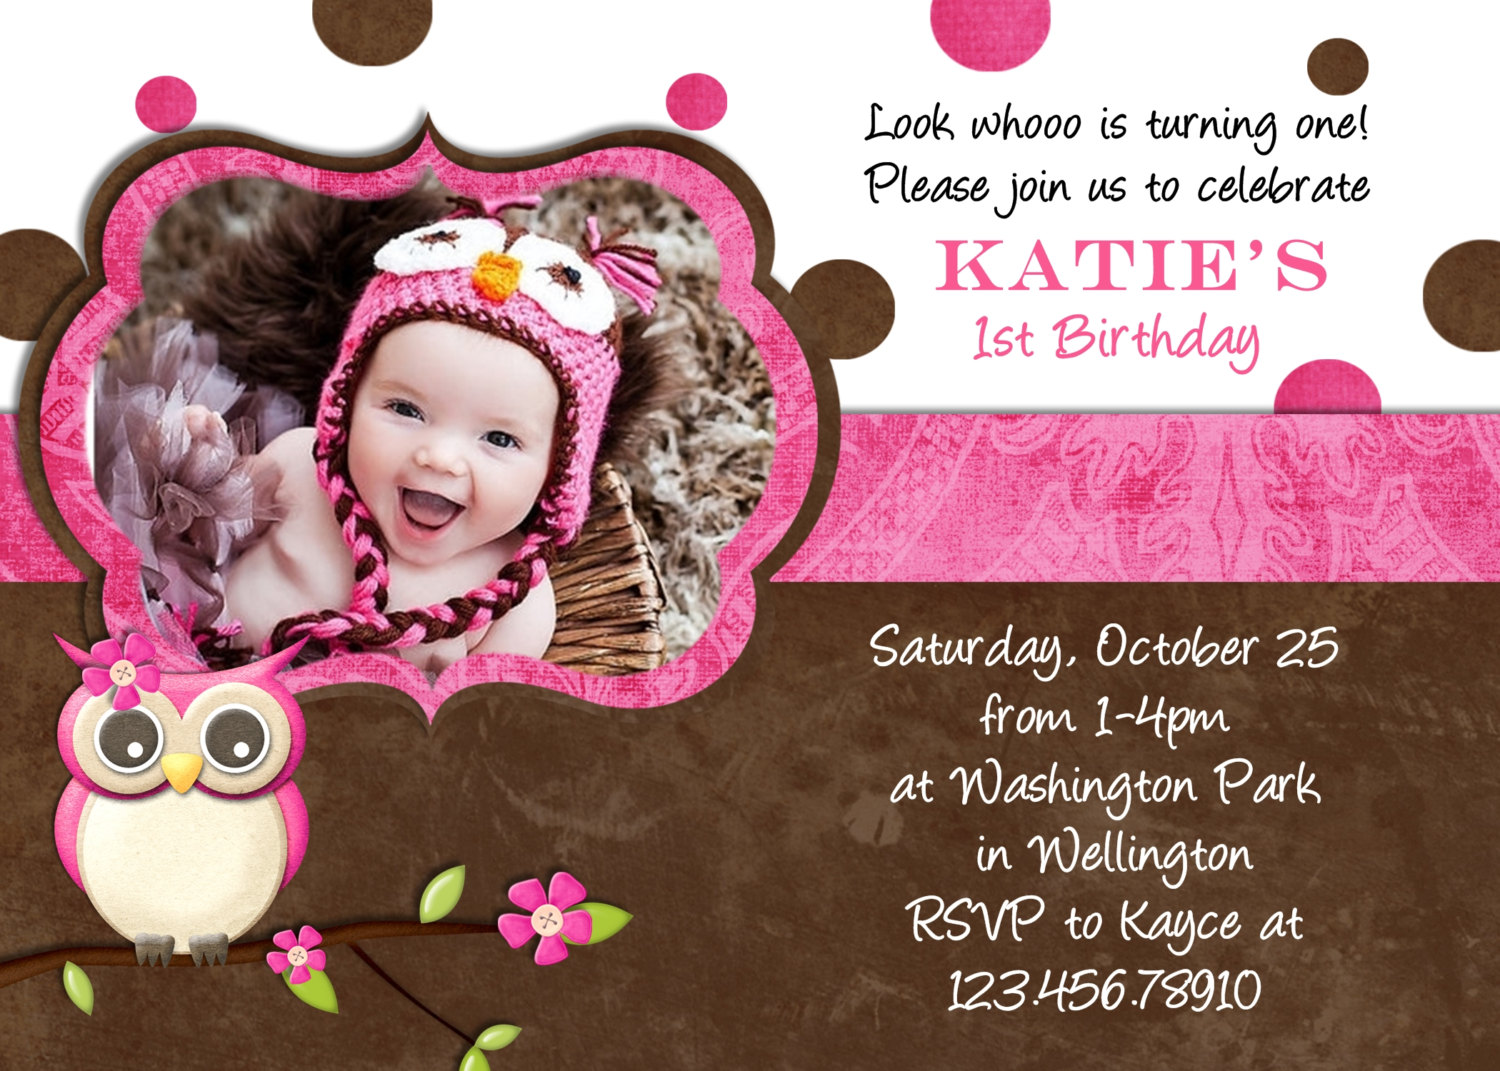 best birthday invitation card design ; birthday-invitations-cards-and-get-inspiration-to-create-the-Birthday-invitation-design-of-your-dreams-1